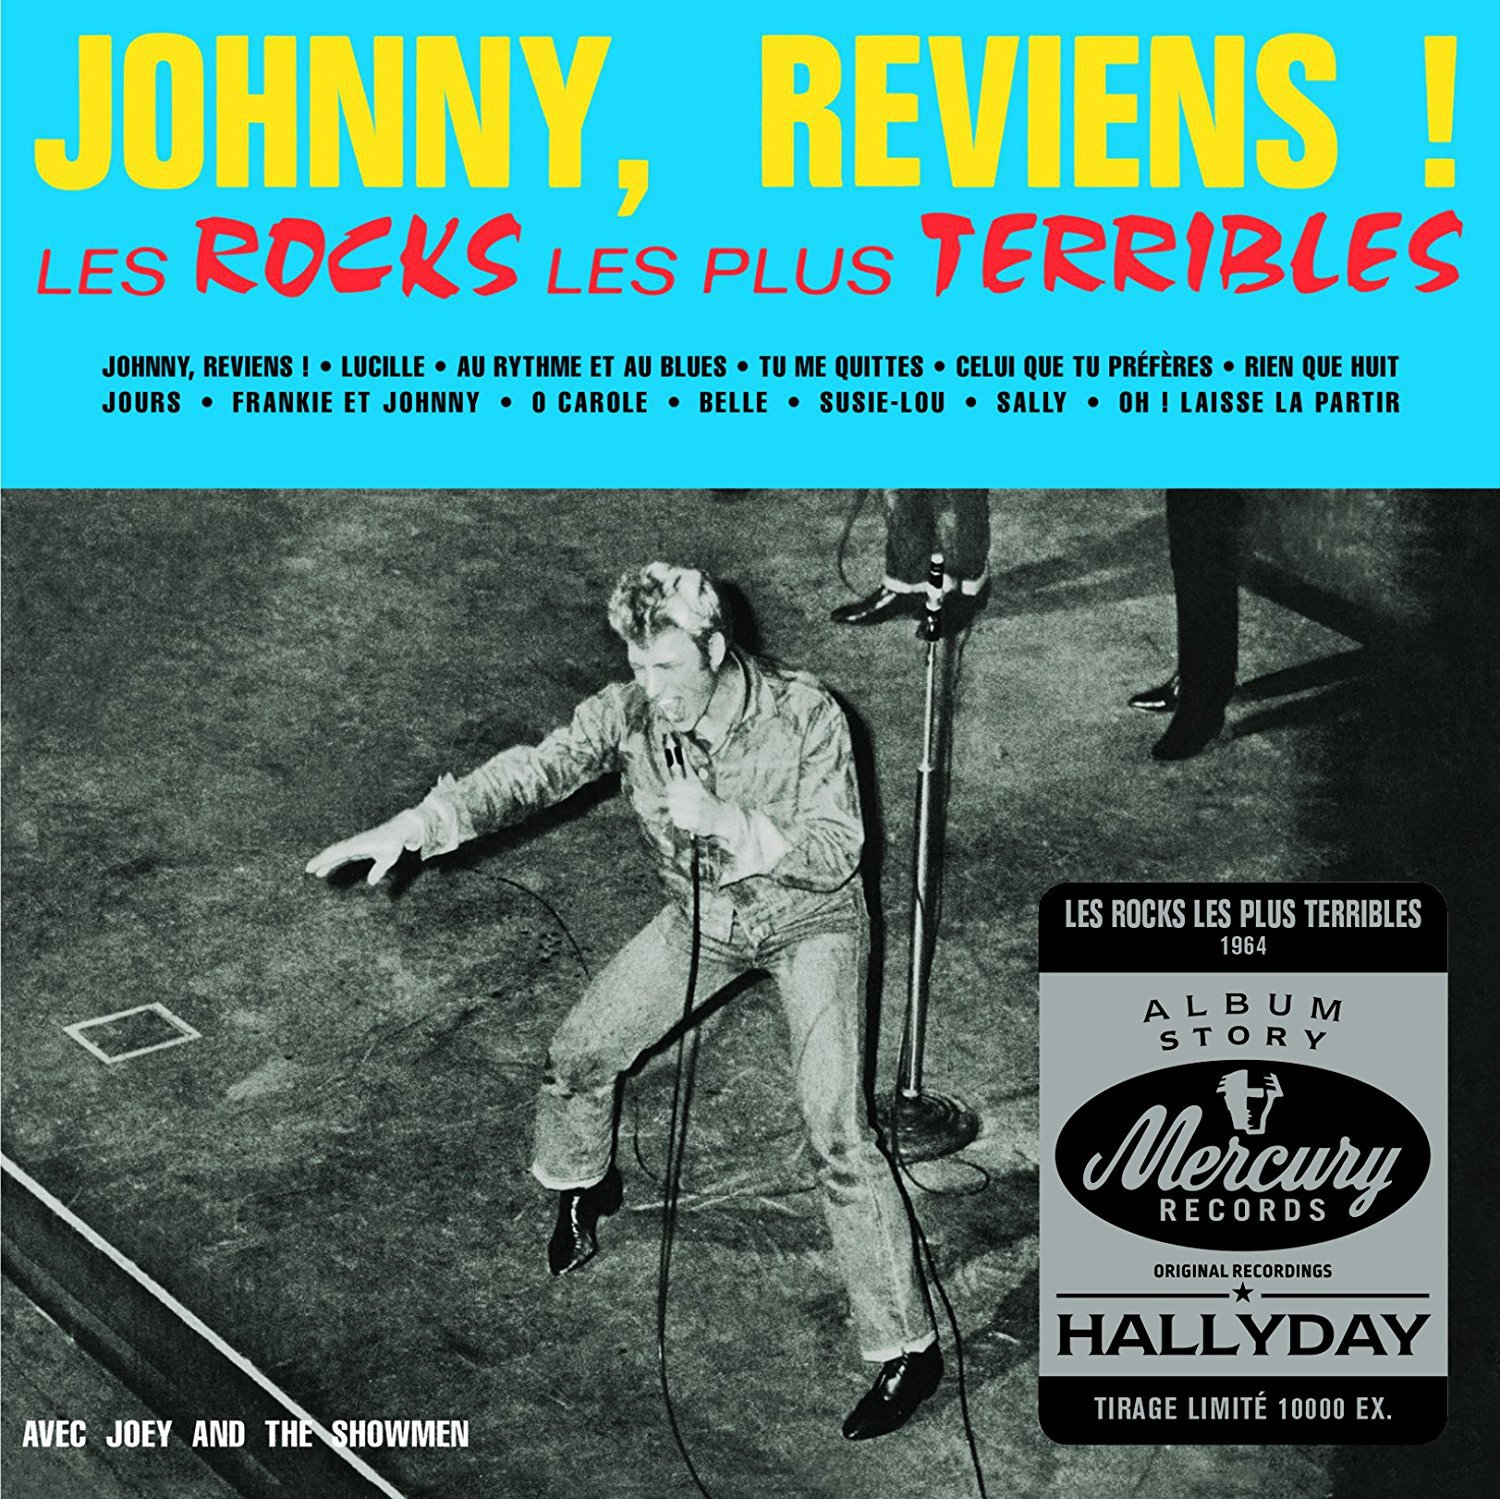 Les Rocks 55% OFF Plus Free shipping / New Terribles